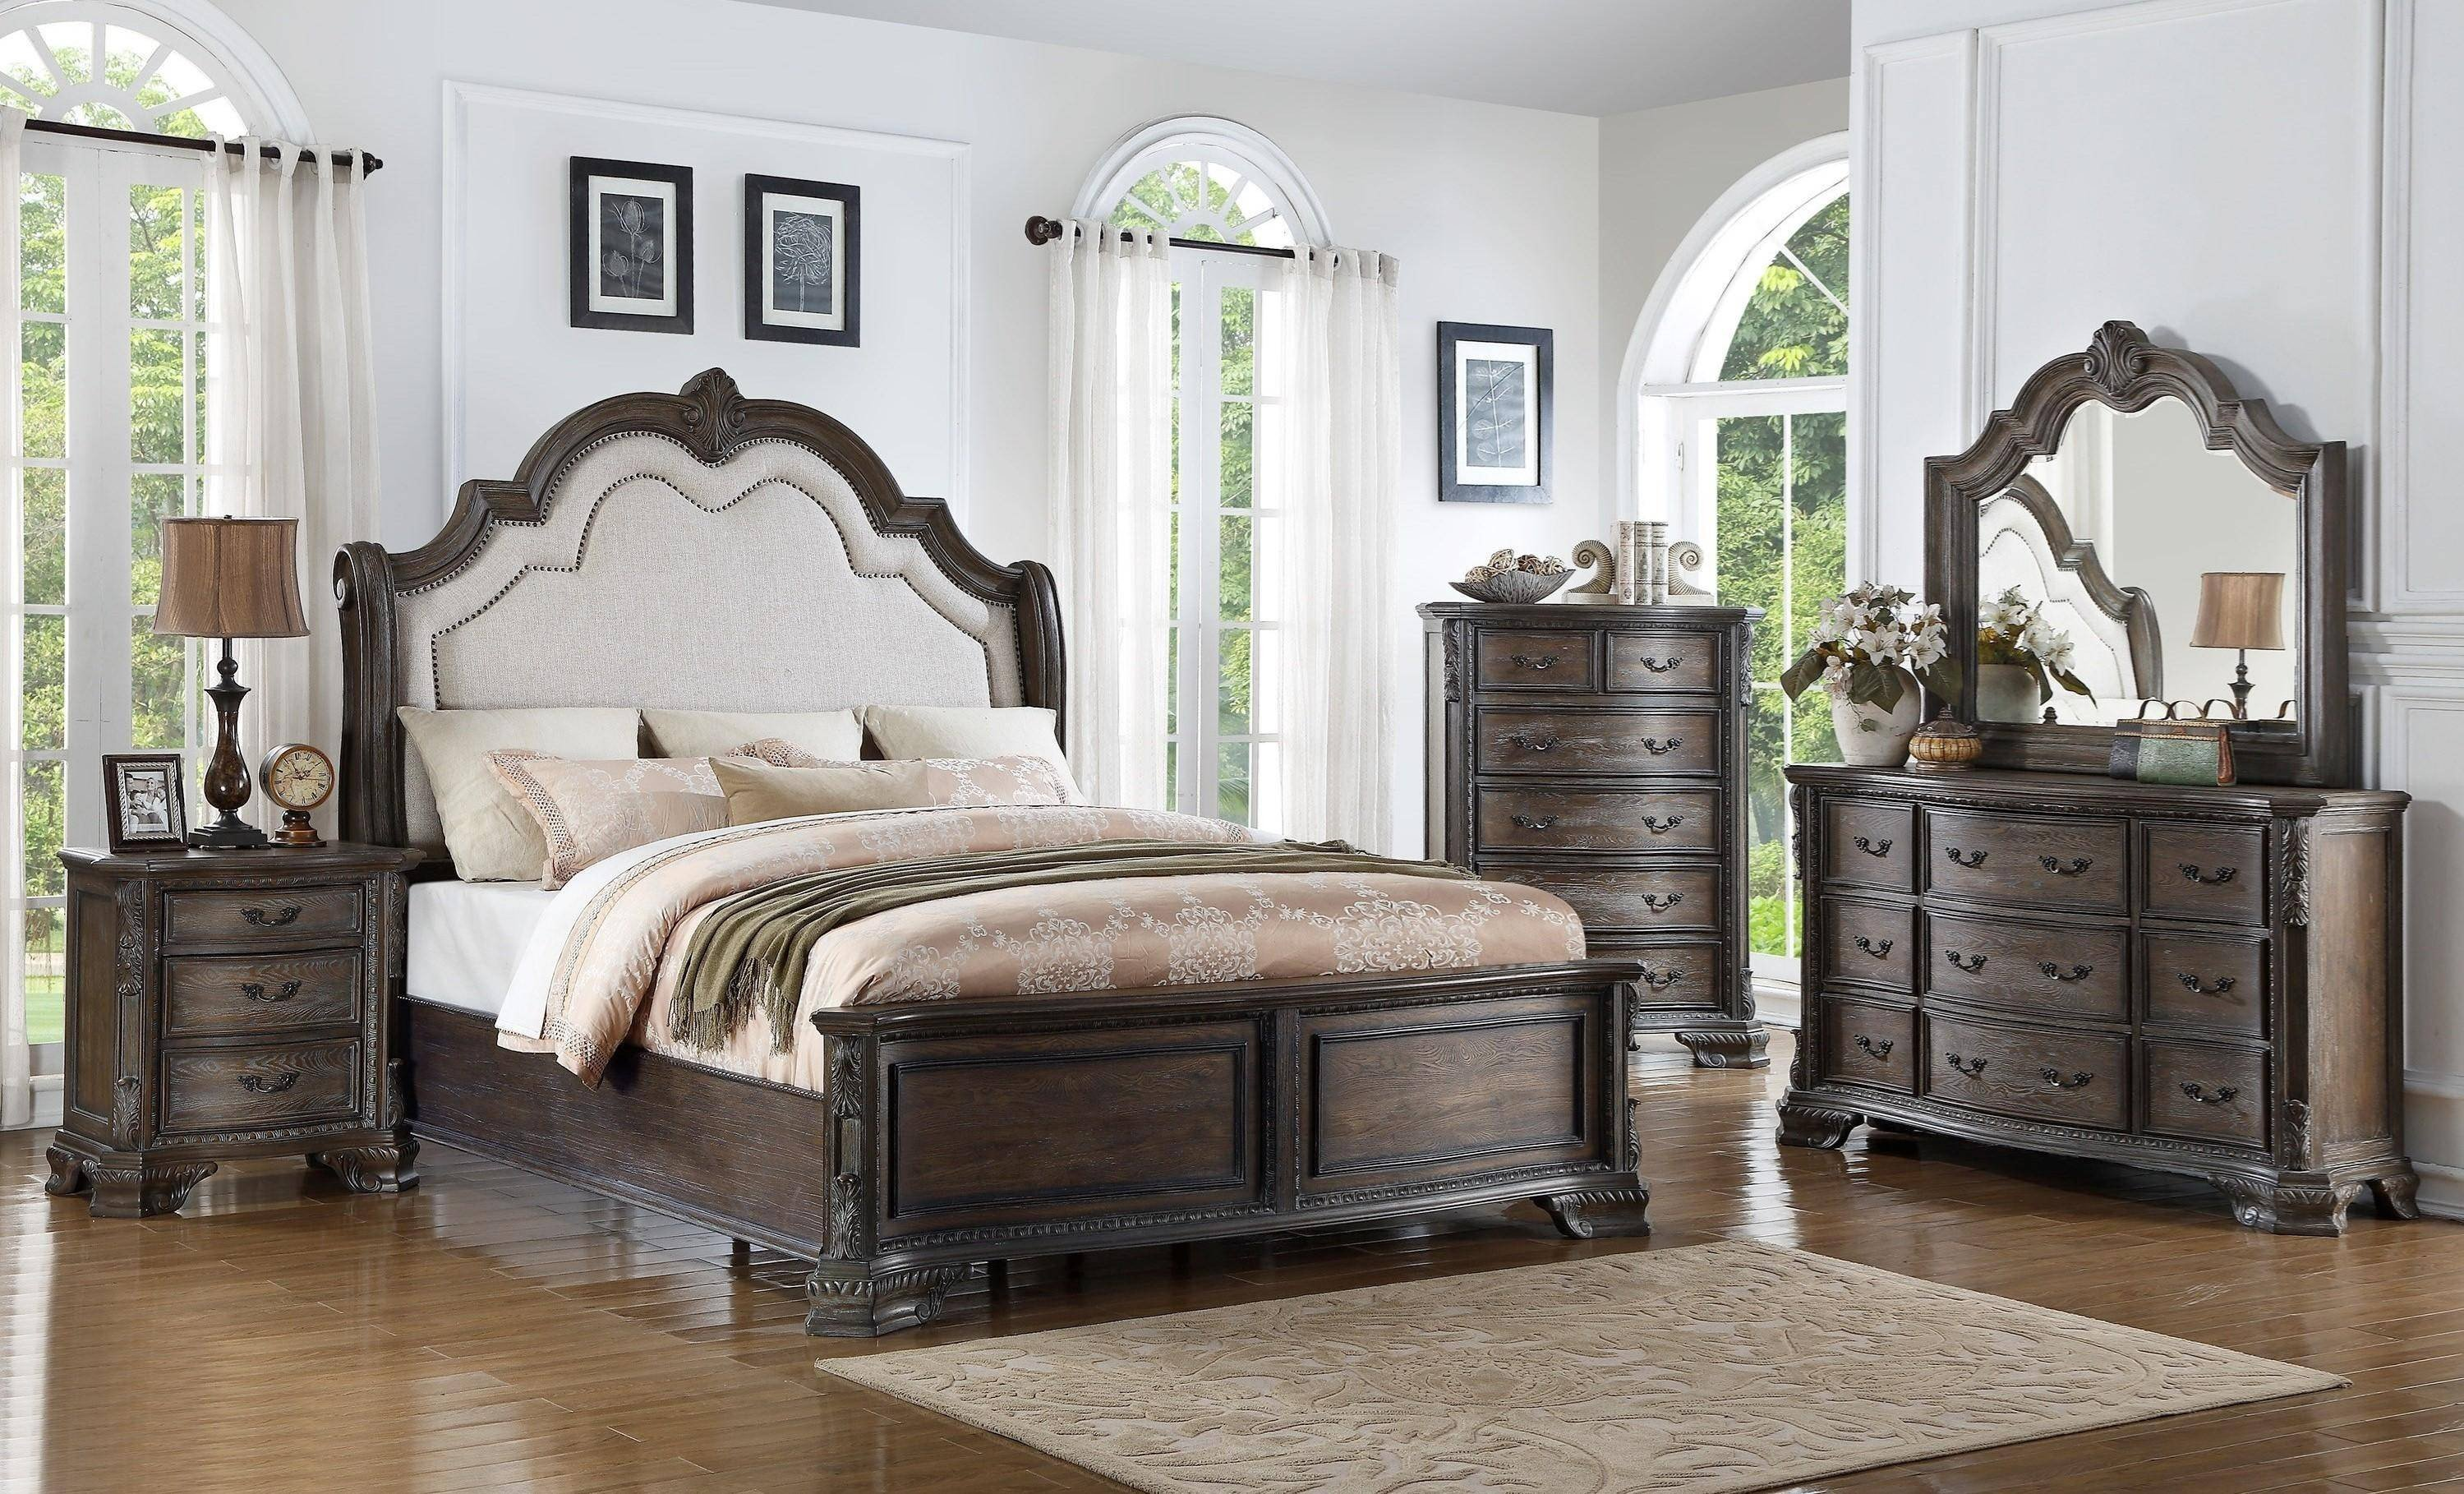 King Size Oak Bedroom Set Awesome Crown Mark B1120 Sheffield Queen Panel Bed In Gray Fabric